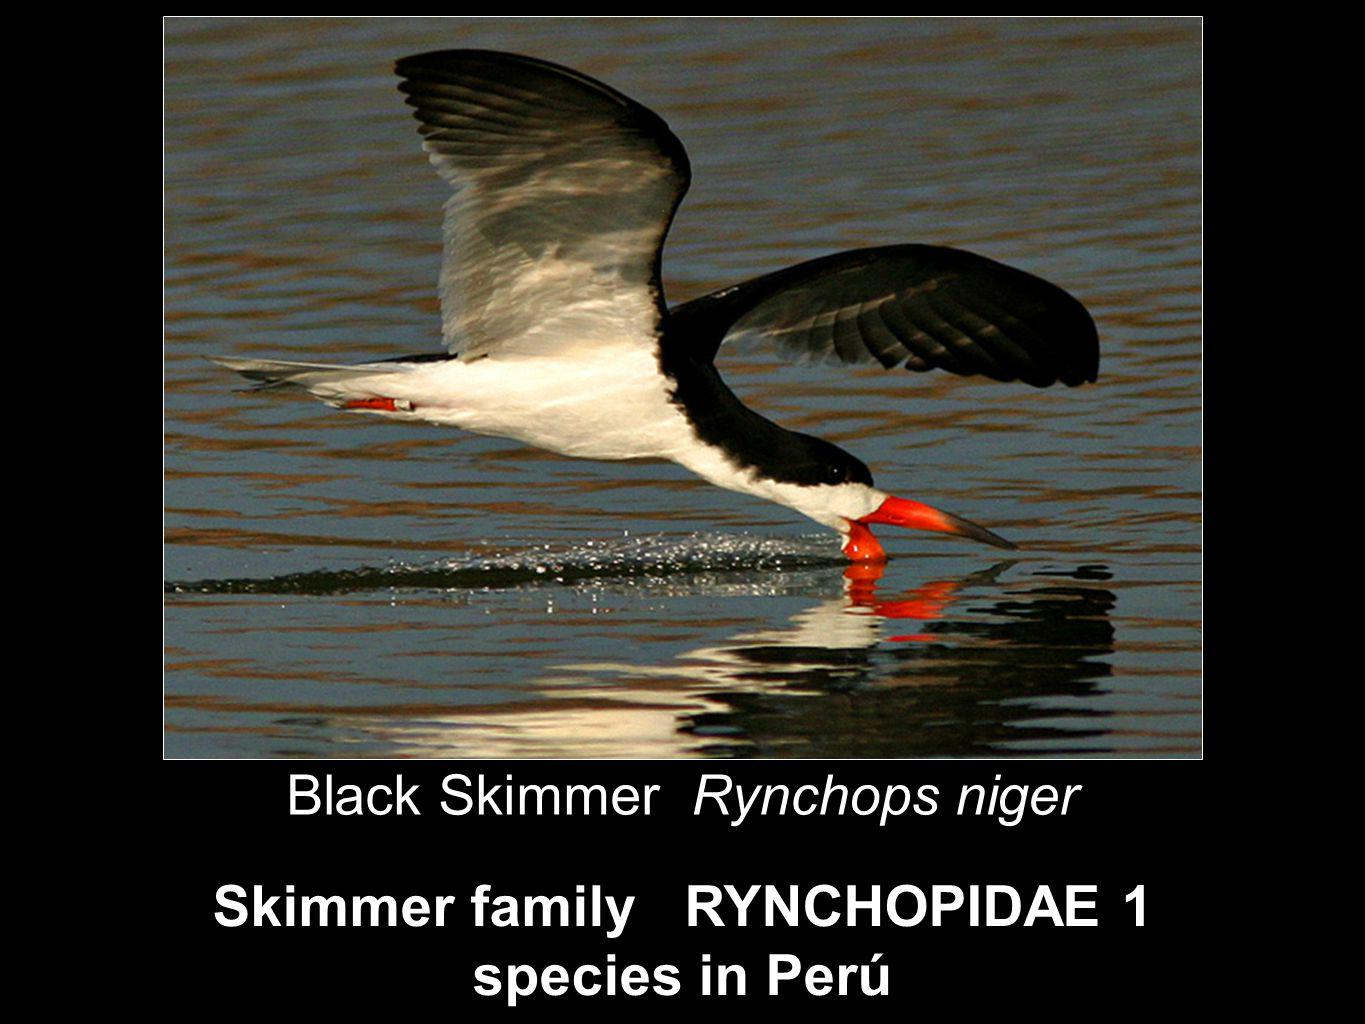 Skimmer family RYNCHOPIDAE 1 species in Perú Black Skimmer Rynchops niger